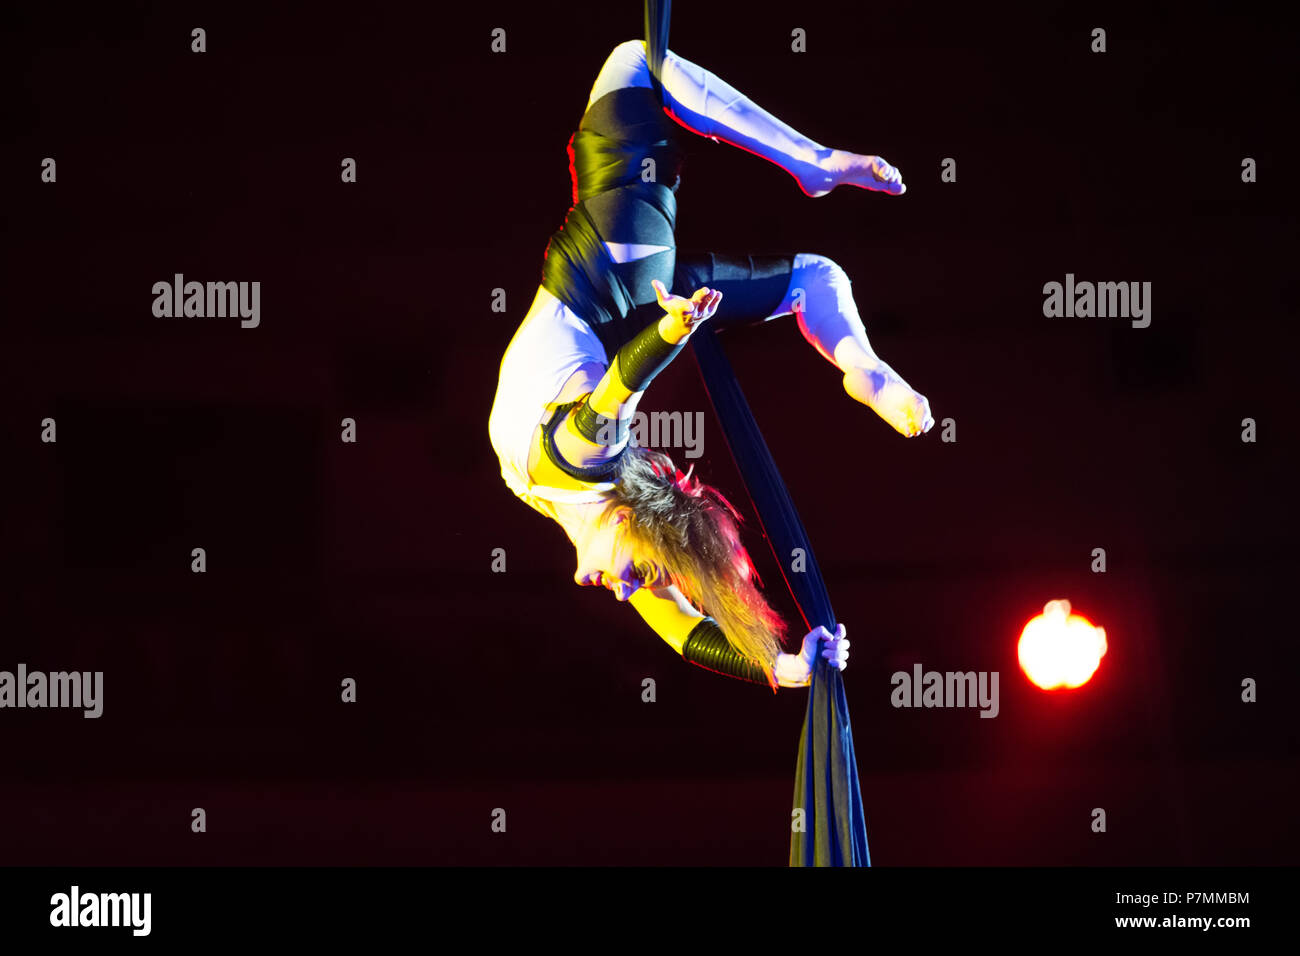 Belarus, Gomel, April 1, 2018. Gomel State Circus. Performance of the team of the Moscow circus Nikulin.Acrobat on the canvases. Gymnast the circus ac - Stock Image